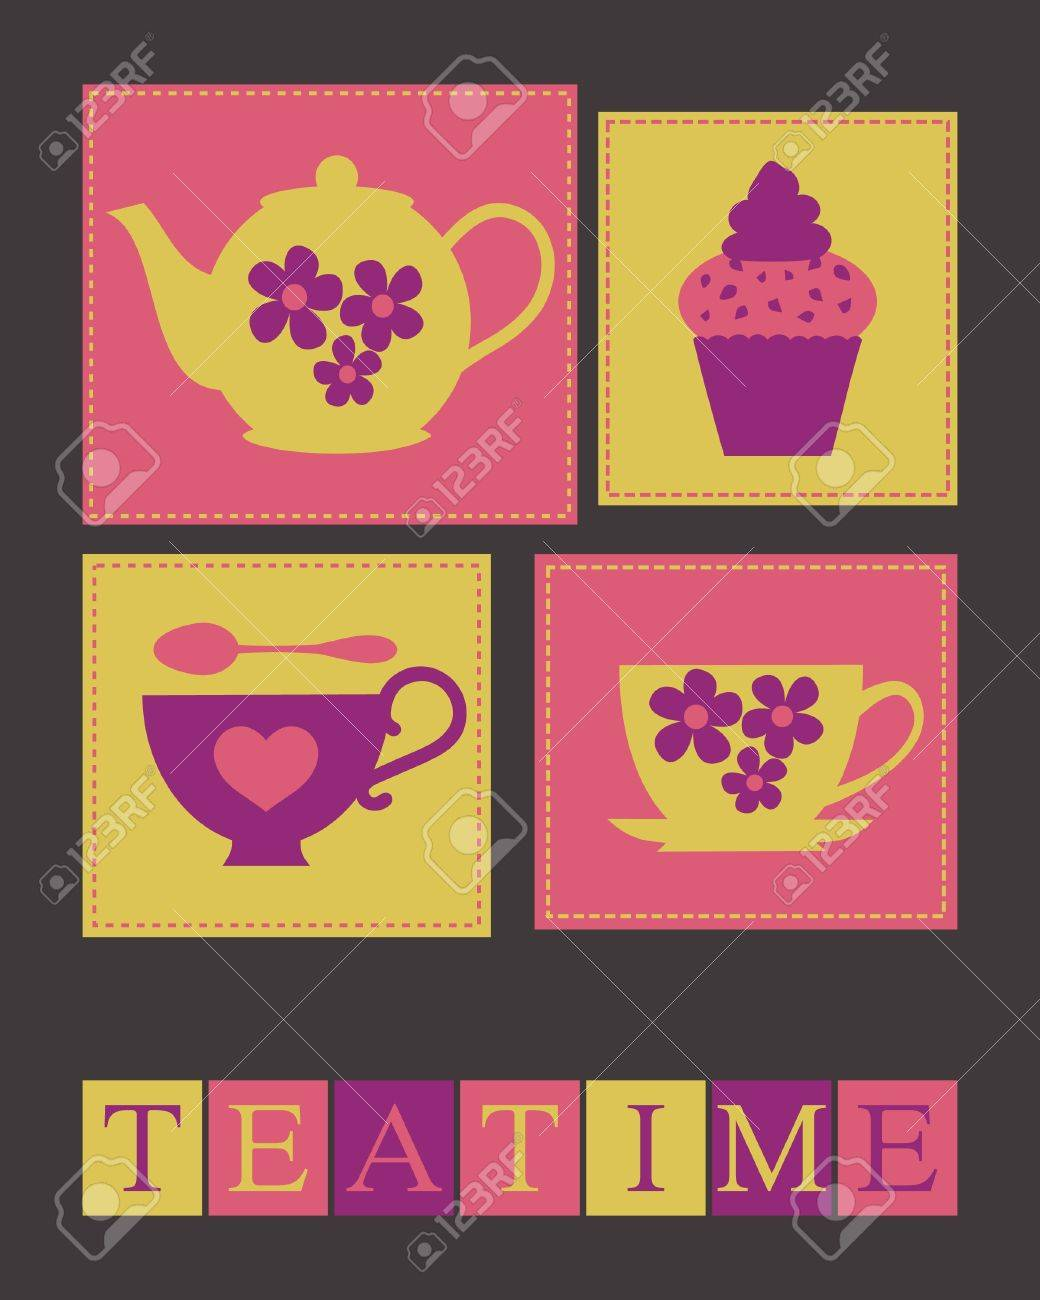 Illustration of cute teacups, teapot and a cupcake. Stock Vector - 14125930